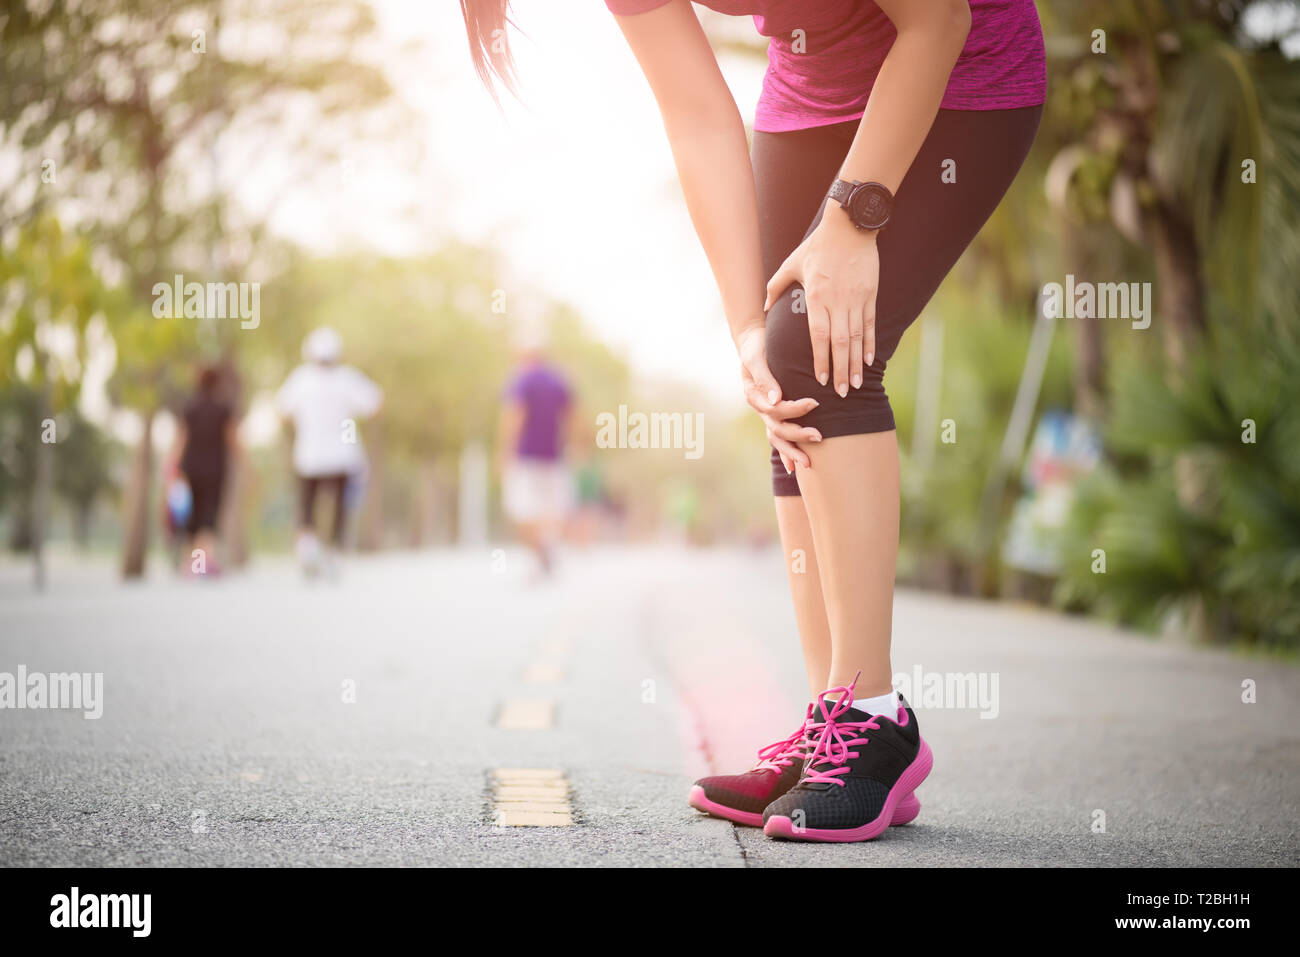 Runner sport knee injury. Woman in knee pain while running work out in park. Health care concept. - Stock Image